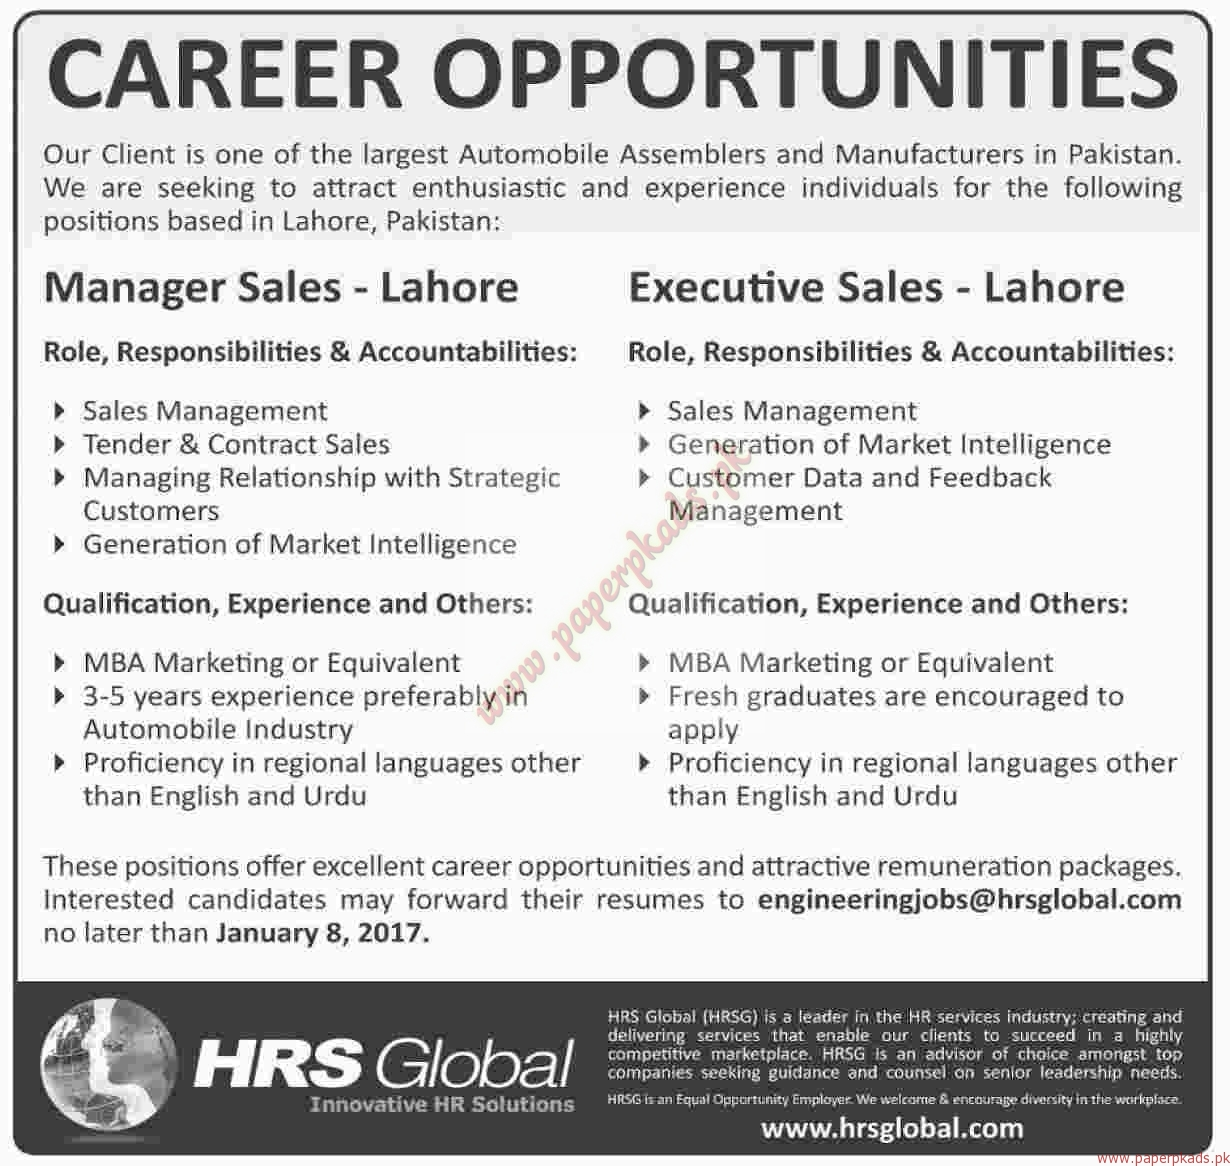 HRS GLobal Jobs - Dawn Jobs ads 01 January 2017